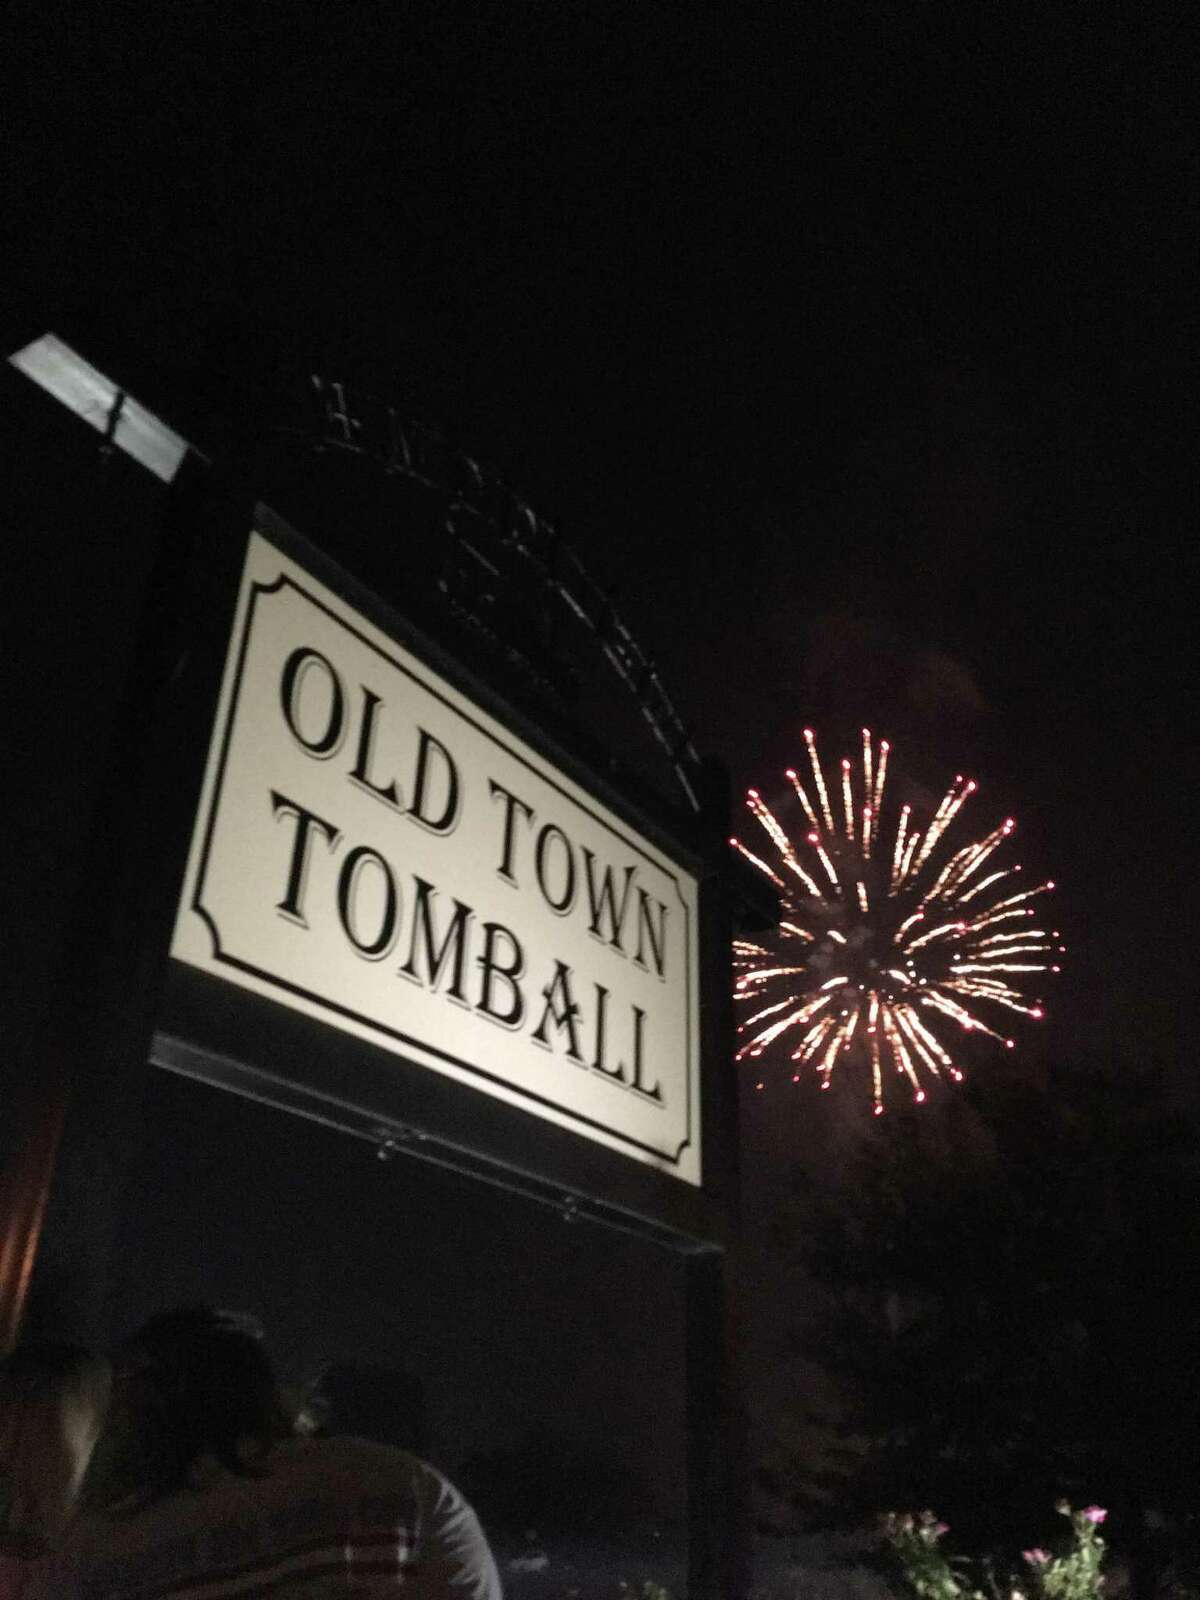 The latest Tomball Night on Aug. 2 will feature vendors from all around the Tomball area, fireworks, family activities like face painting, and mystery shoppers with $100 bill prizes.